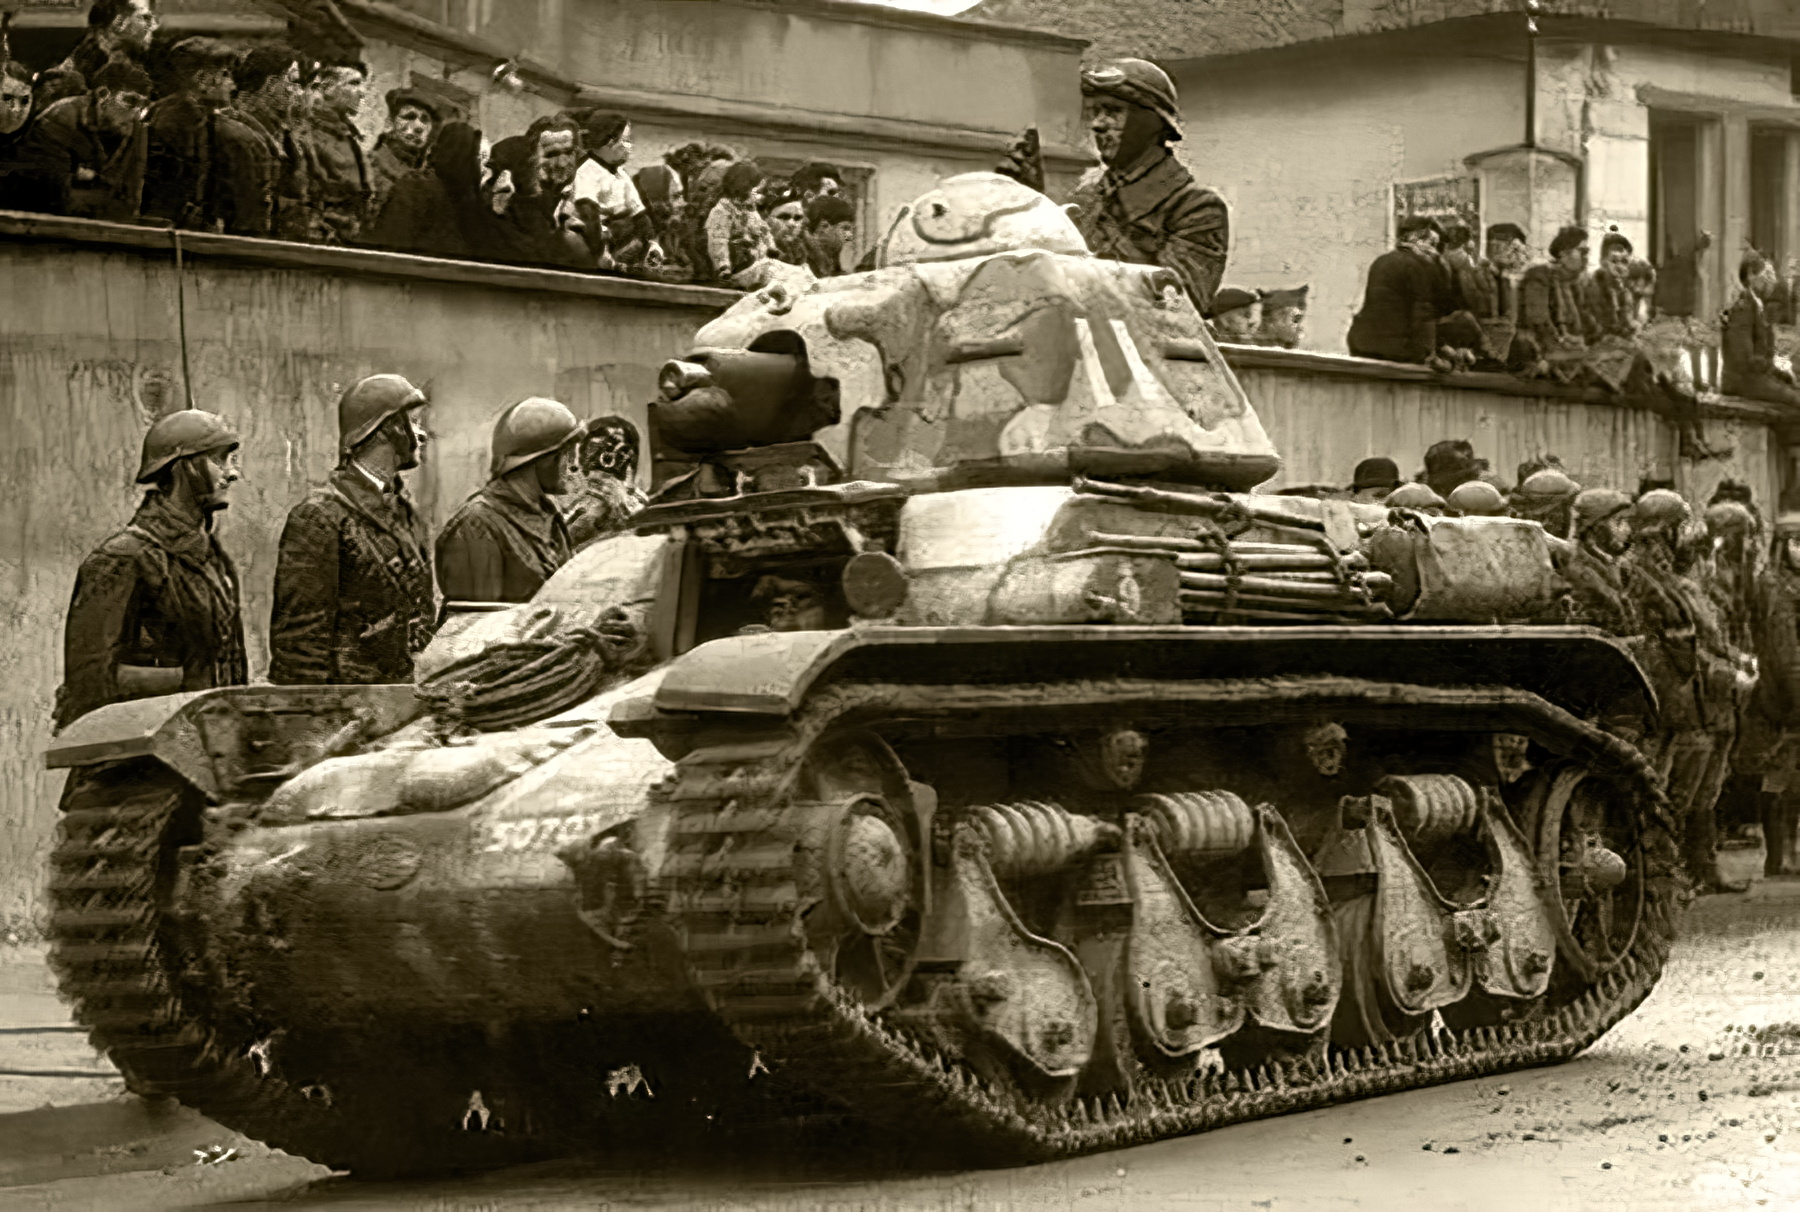 French Army Renault R35 support tank military parade France 1940 web 01